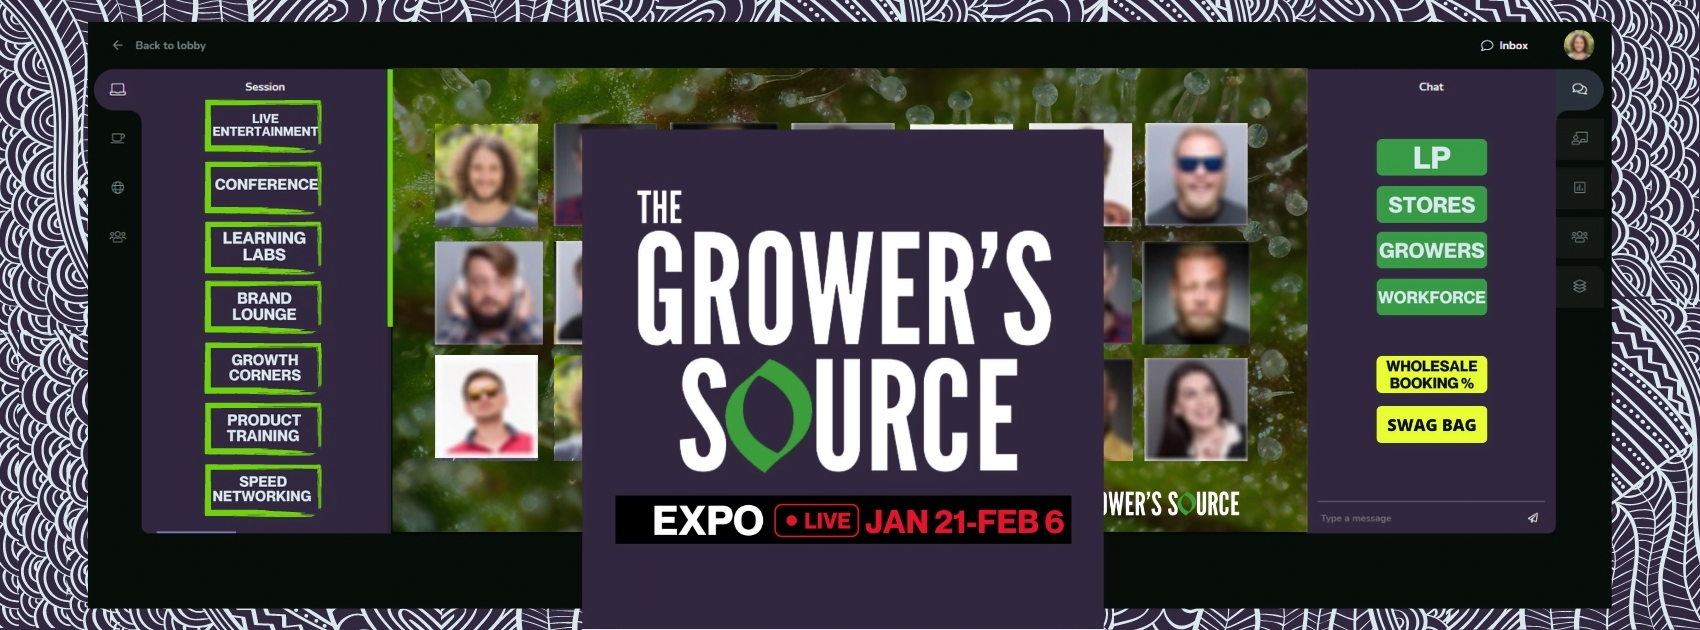 The Grower's Source EXPO Brings Together Cannabis Cultivation Community For Virtual Trade Event